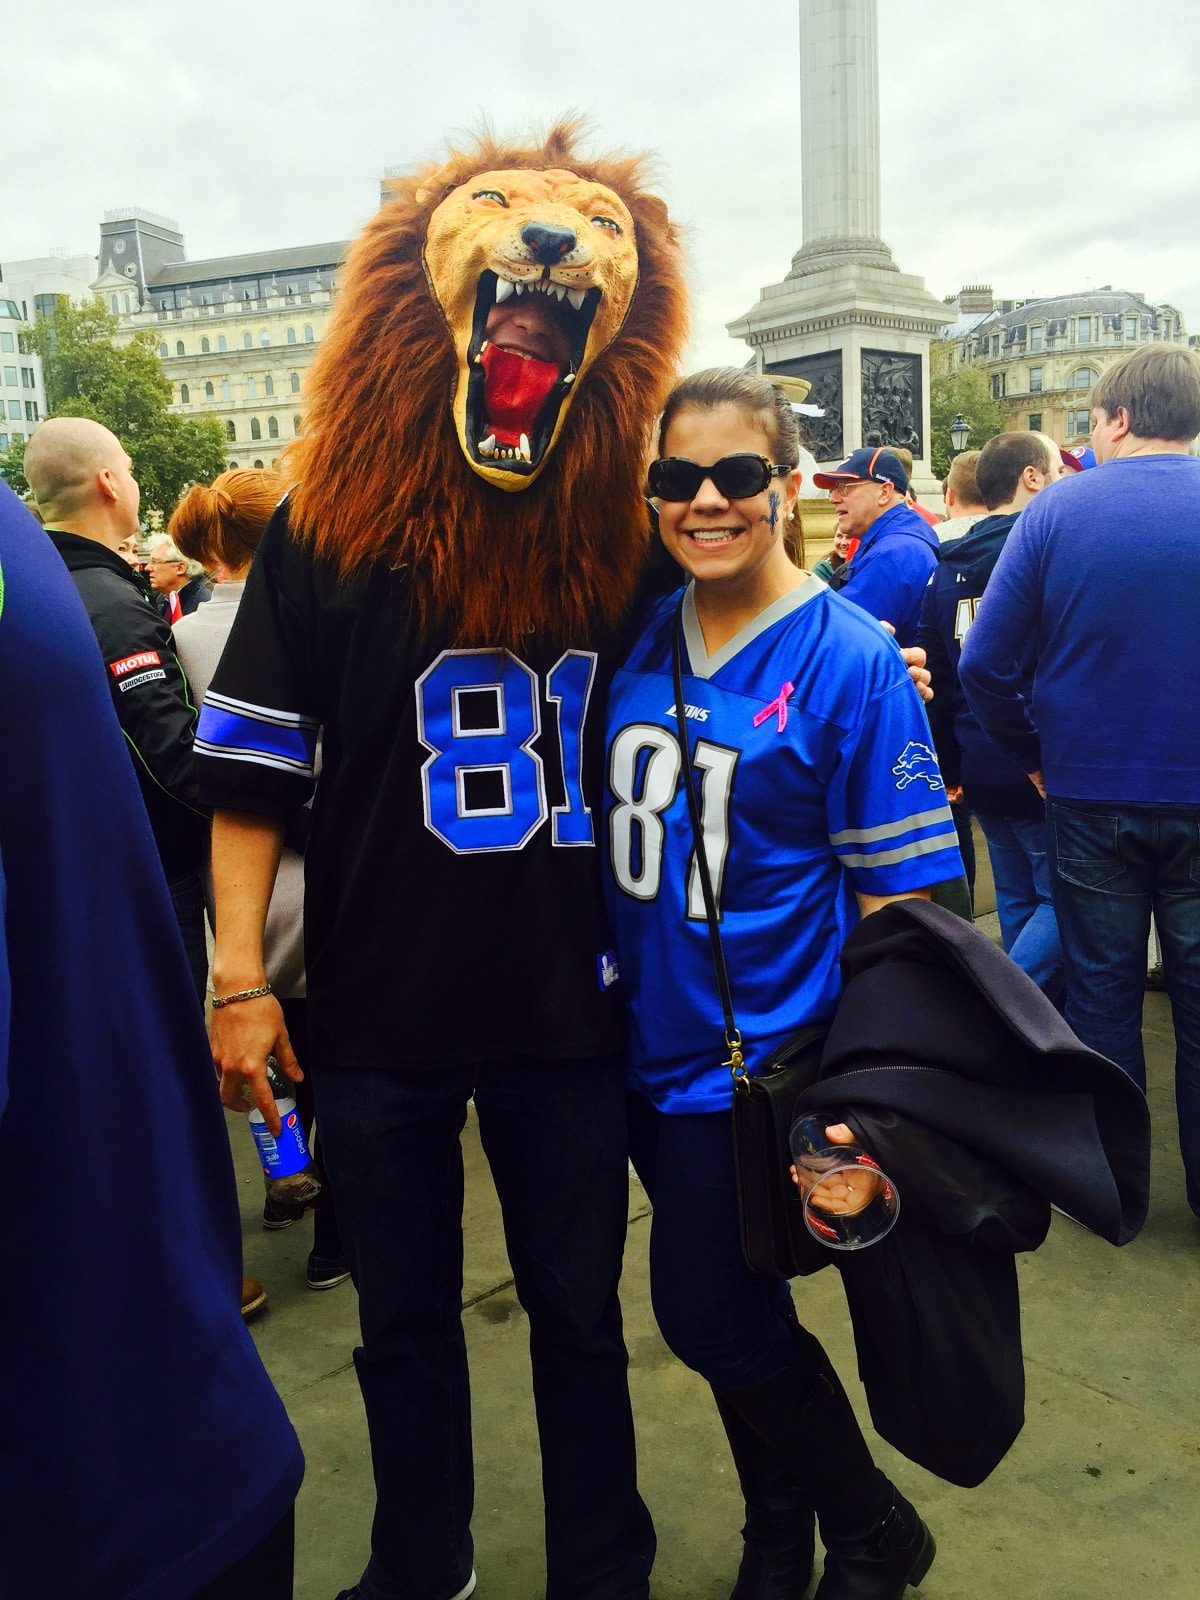 Lions in London via Wayfaring With Wagner